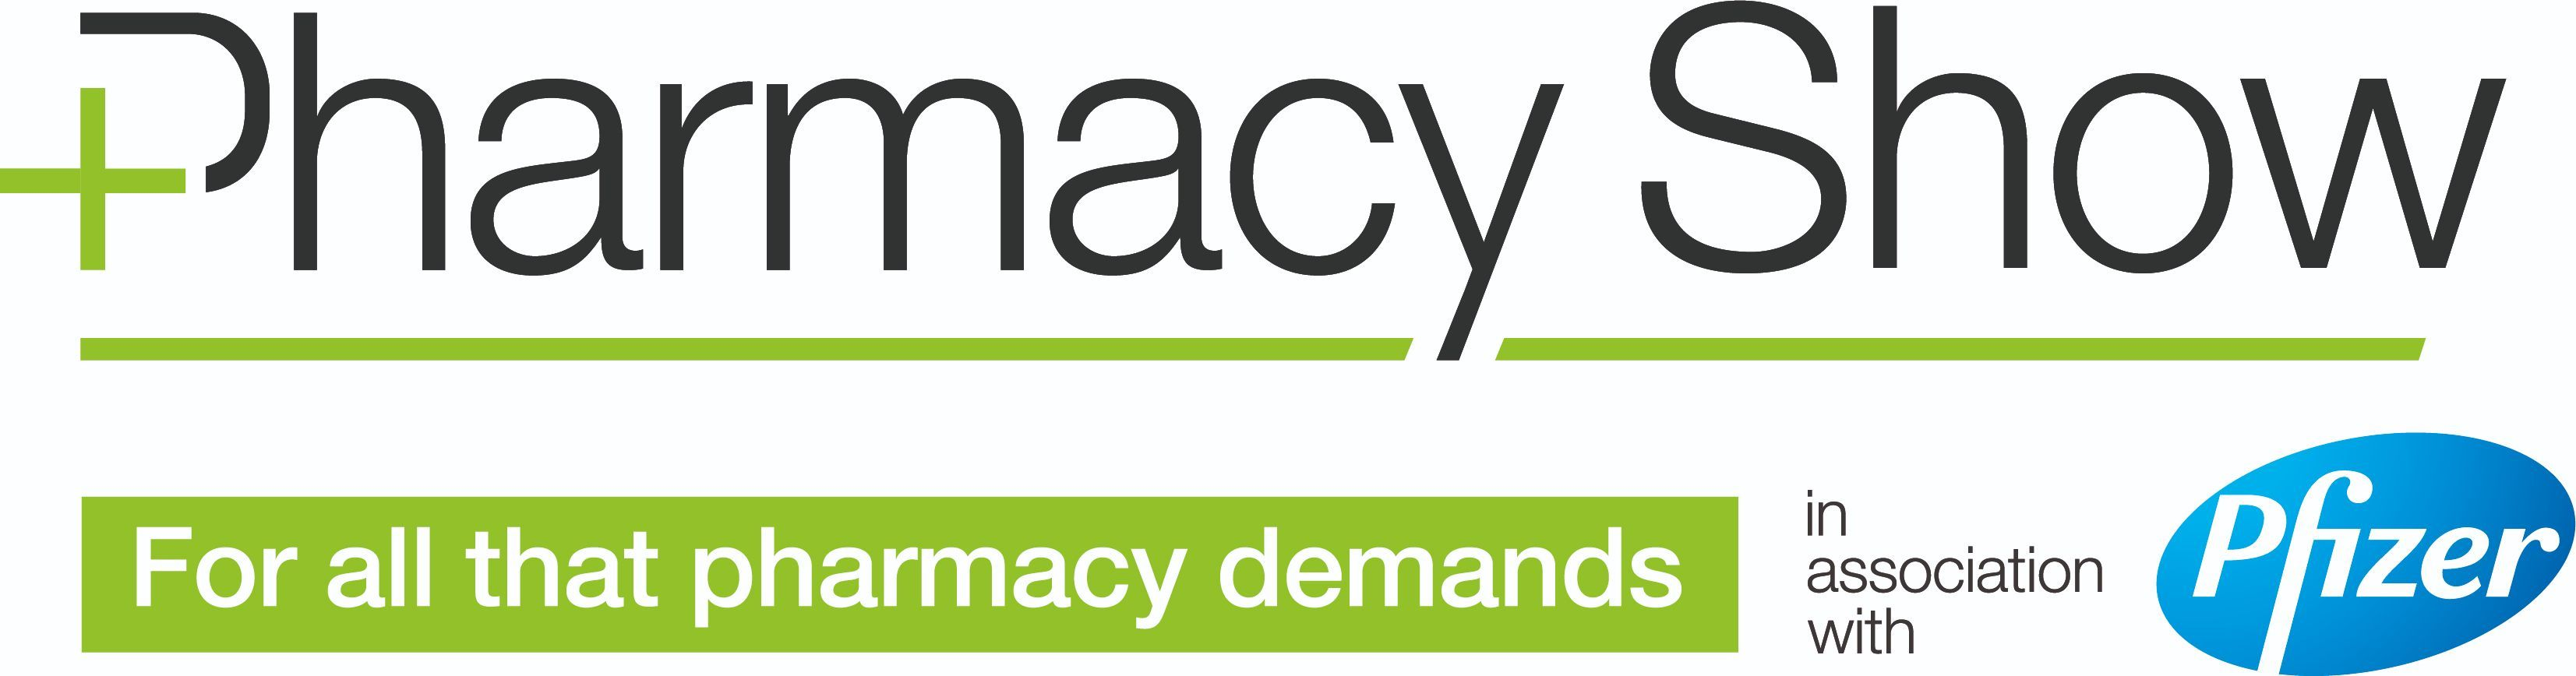 Pharmacy Show 2021 Logo